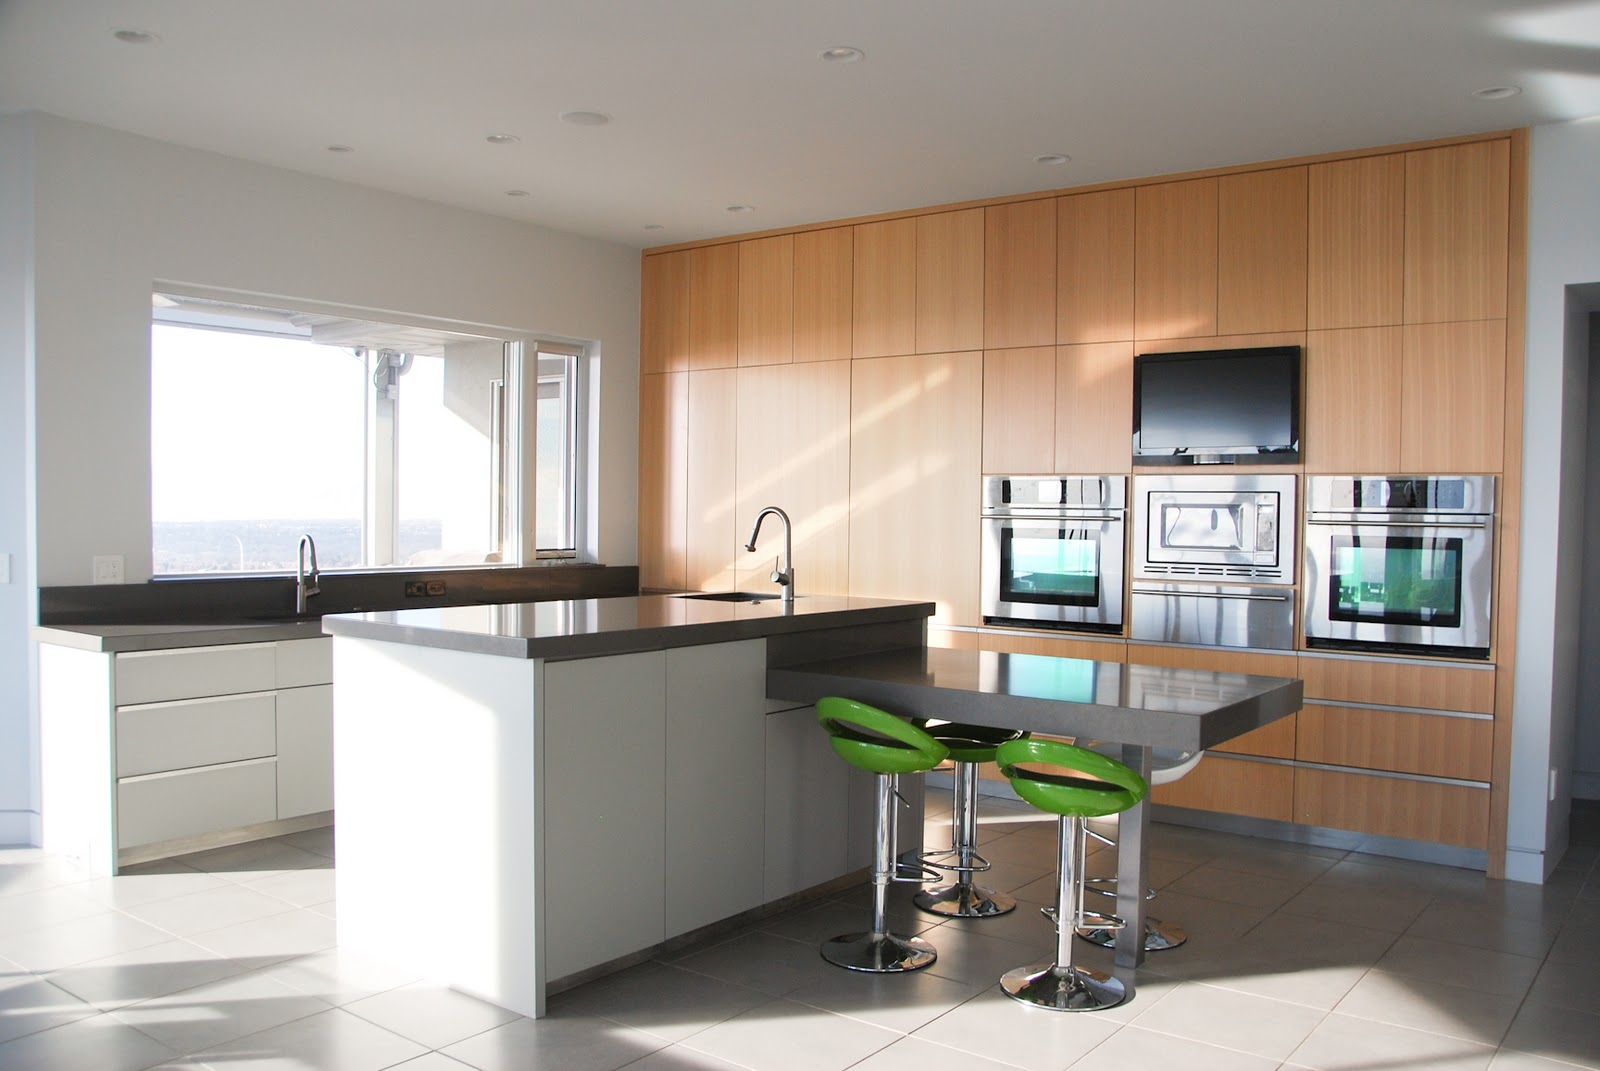 The granite gurus whiteout wednesday 5 white kitchens with super - Our 6 Most Popular Countertop Colors In 2012